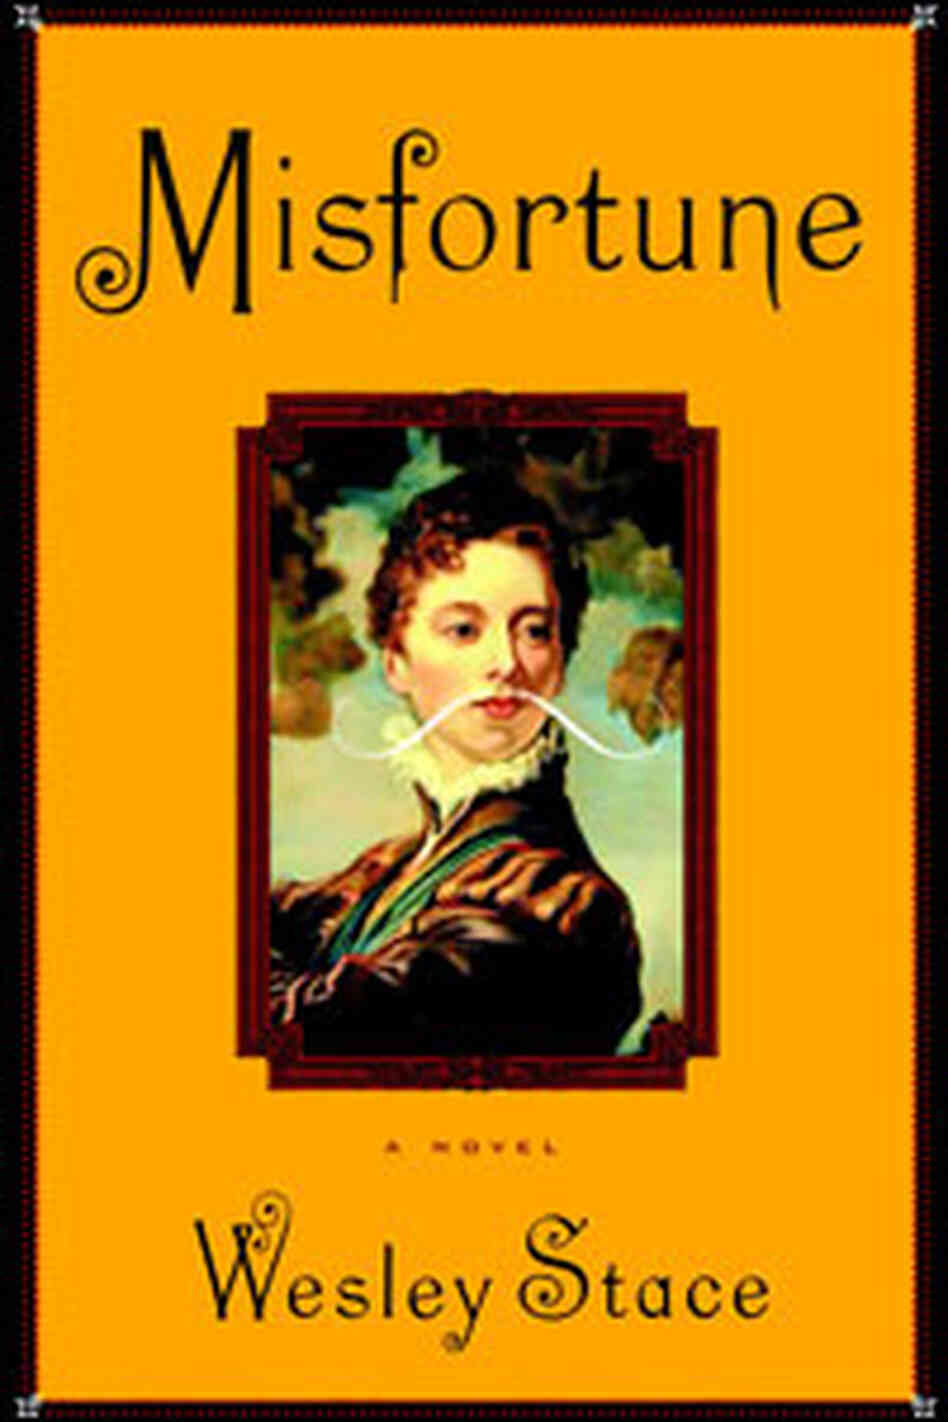 Cover image from 'Misfortune'